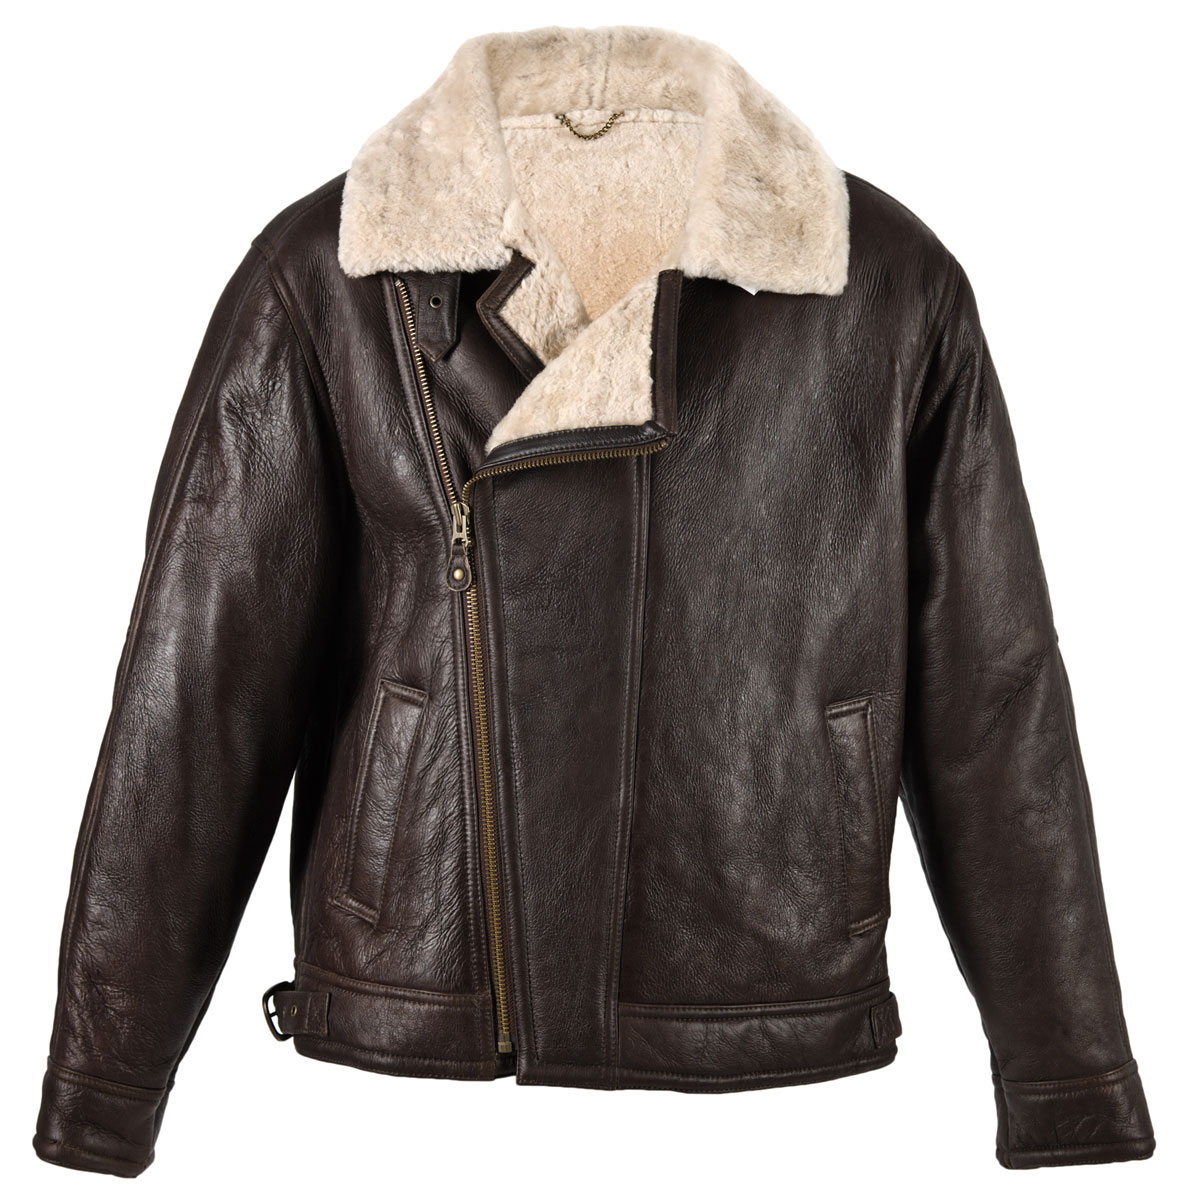 Sheepskin Jackets Uk | Homewood Mountain Ski Resort